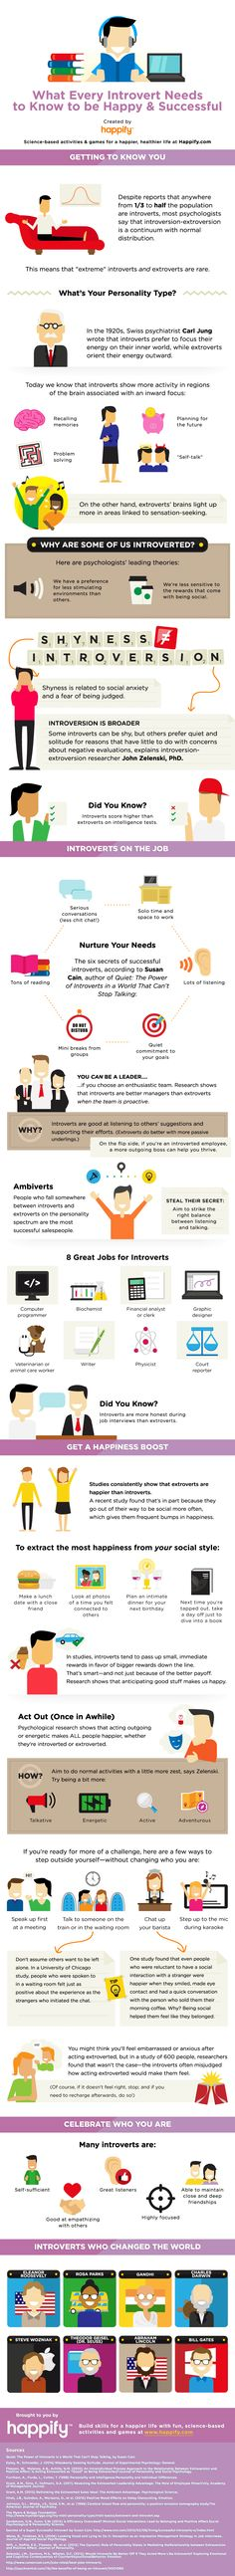 What Every #Introvert Needs to Know to Be Happy and Successful | The Muse #Psychology #Psych